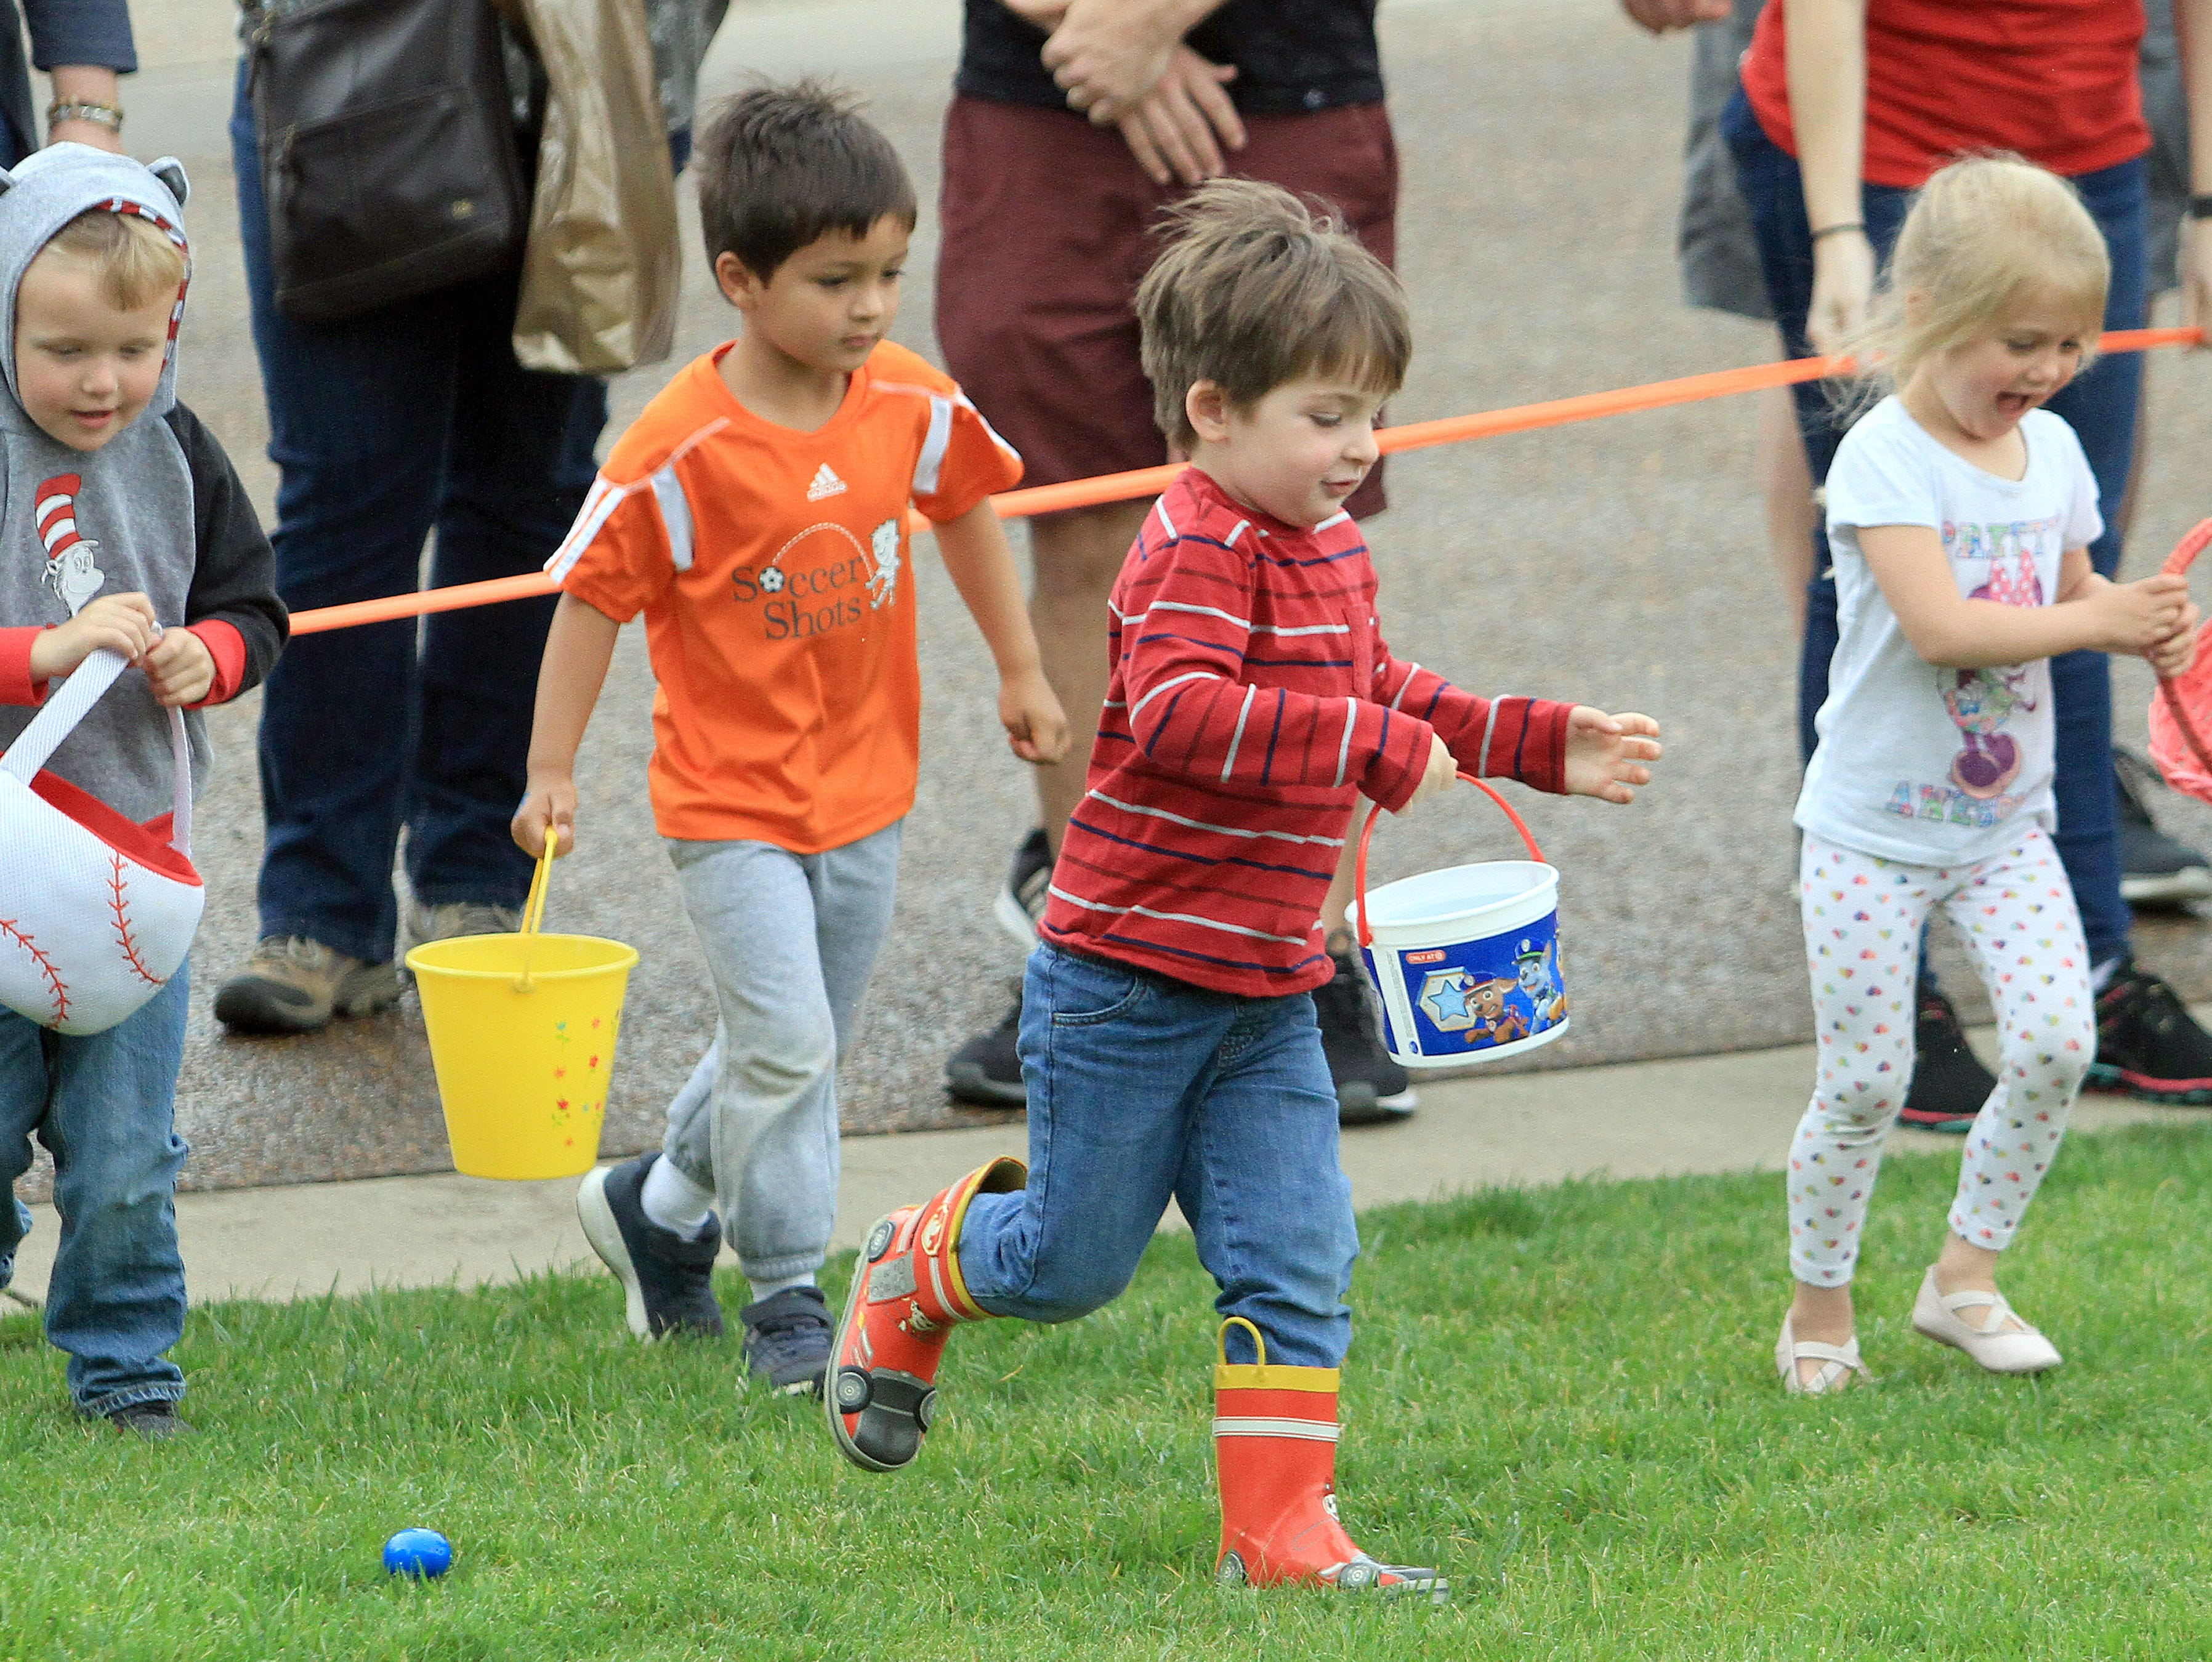 Kids run for their eggs at the Sumner County YMCA egg hunt in Hendersonville, TN on Saturday, April 13, 2019.